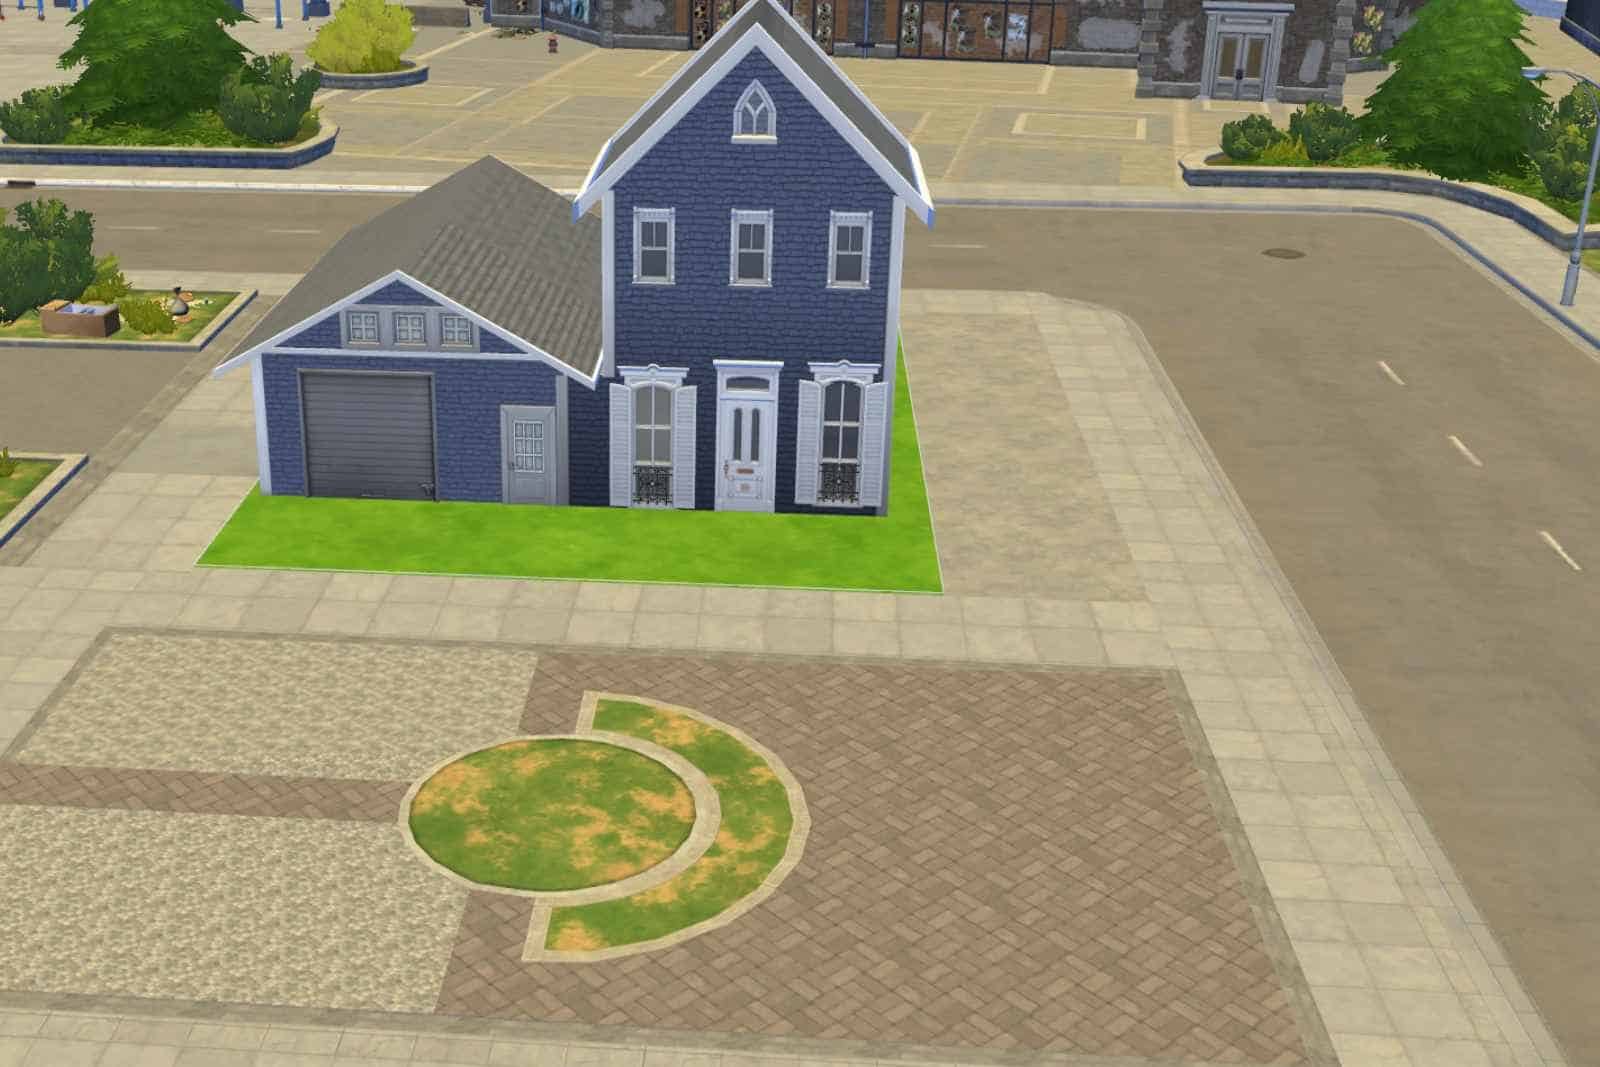 Building A Completely Useless Garage In The Sims 4